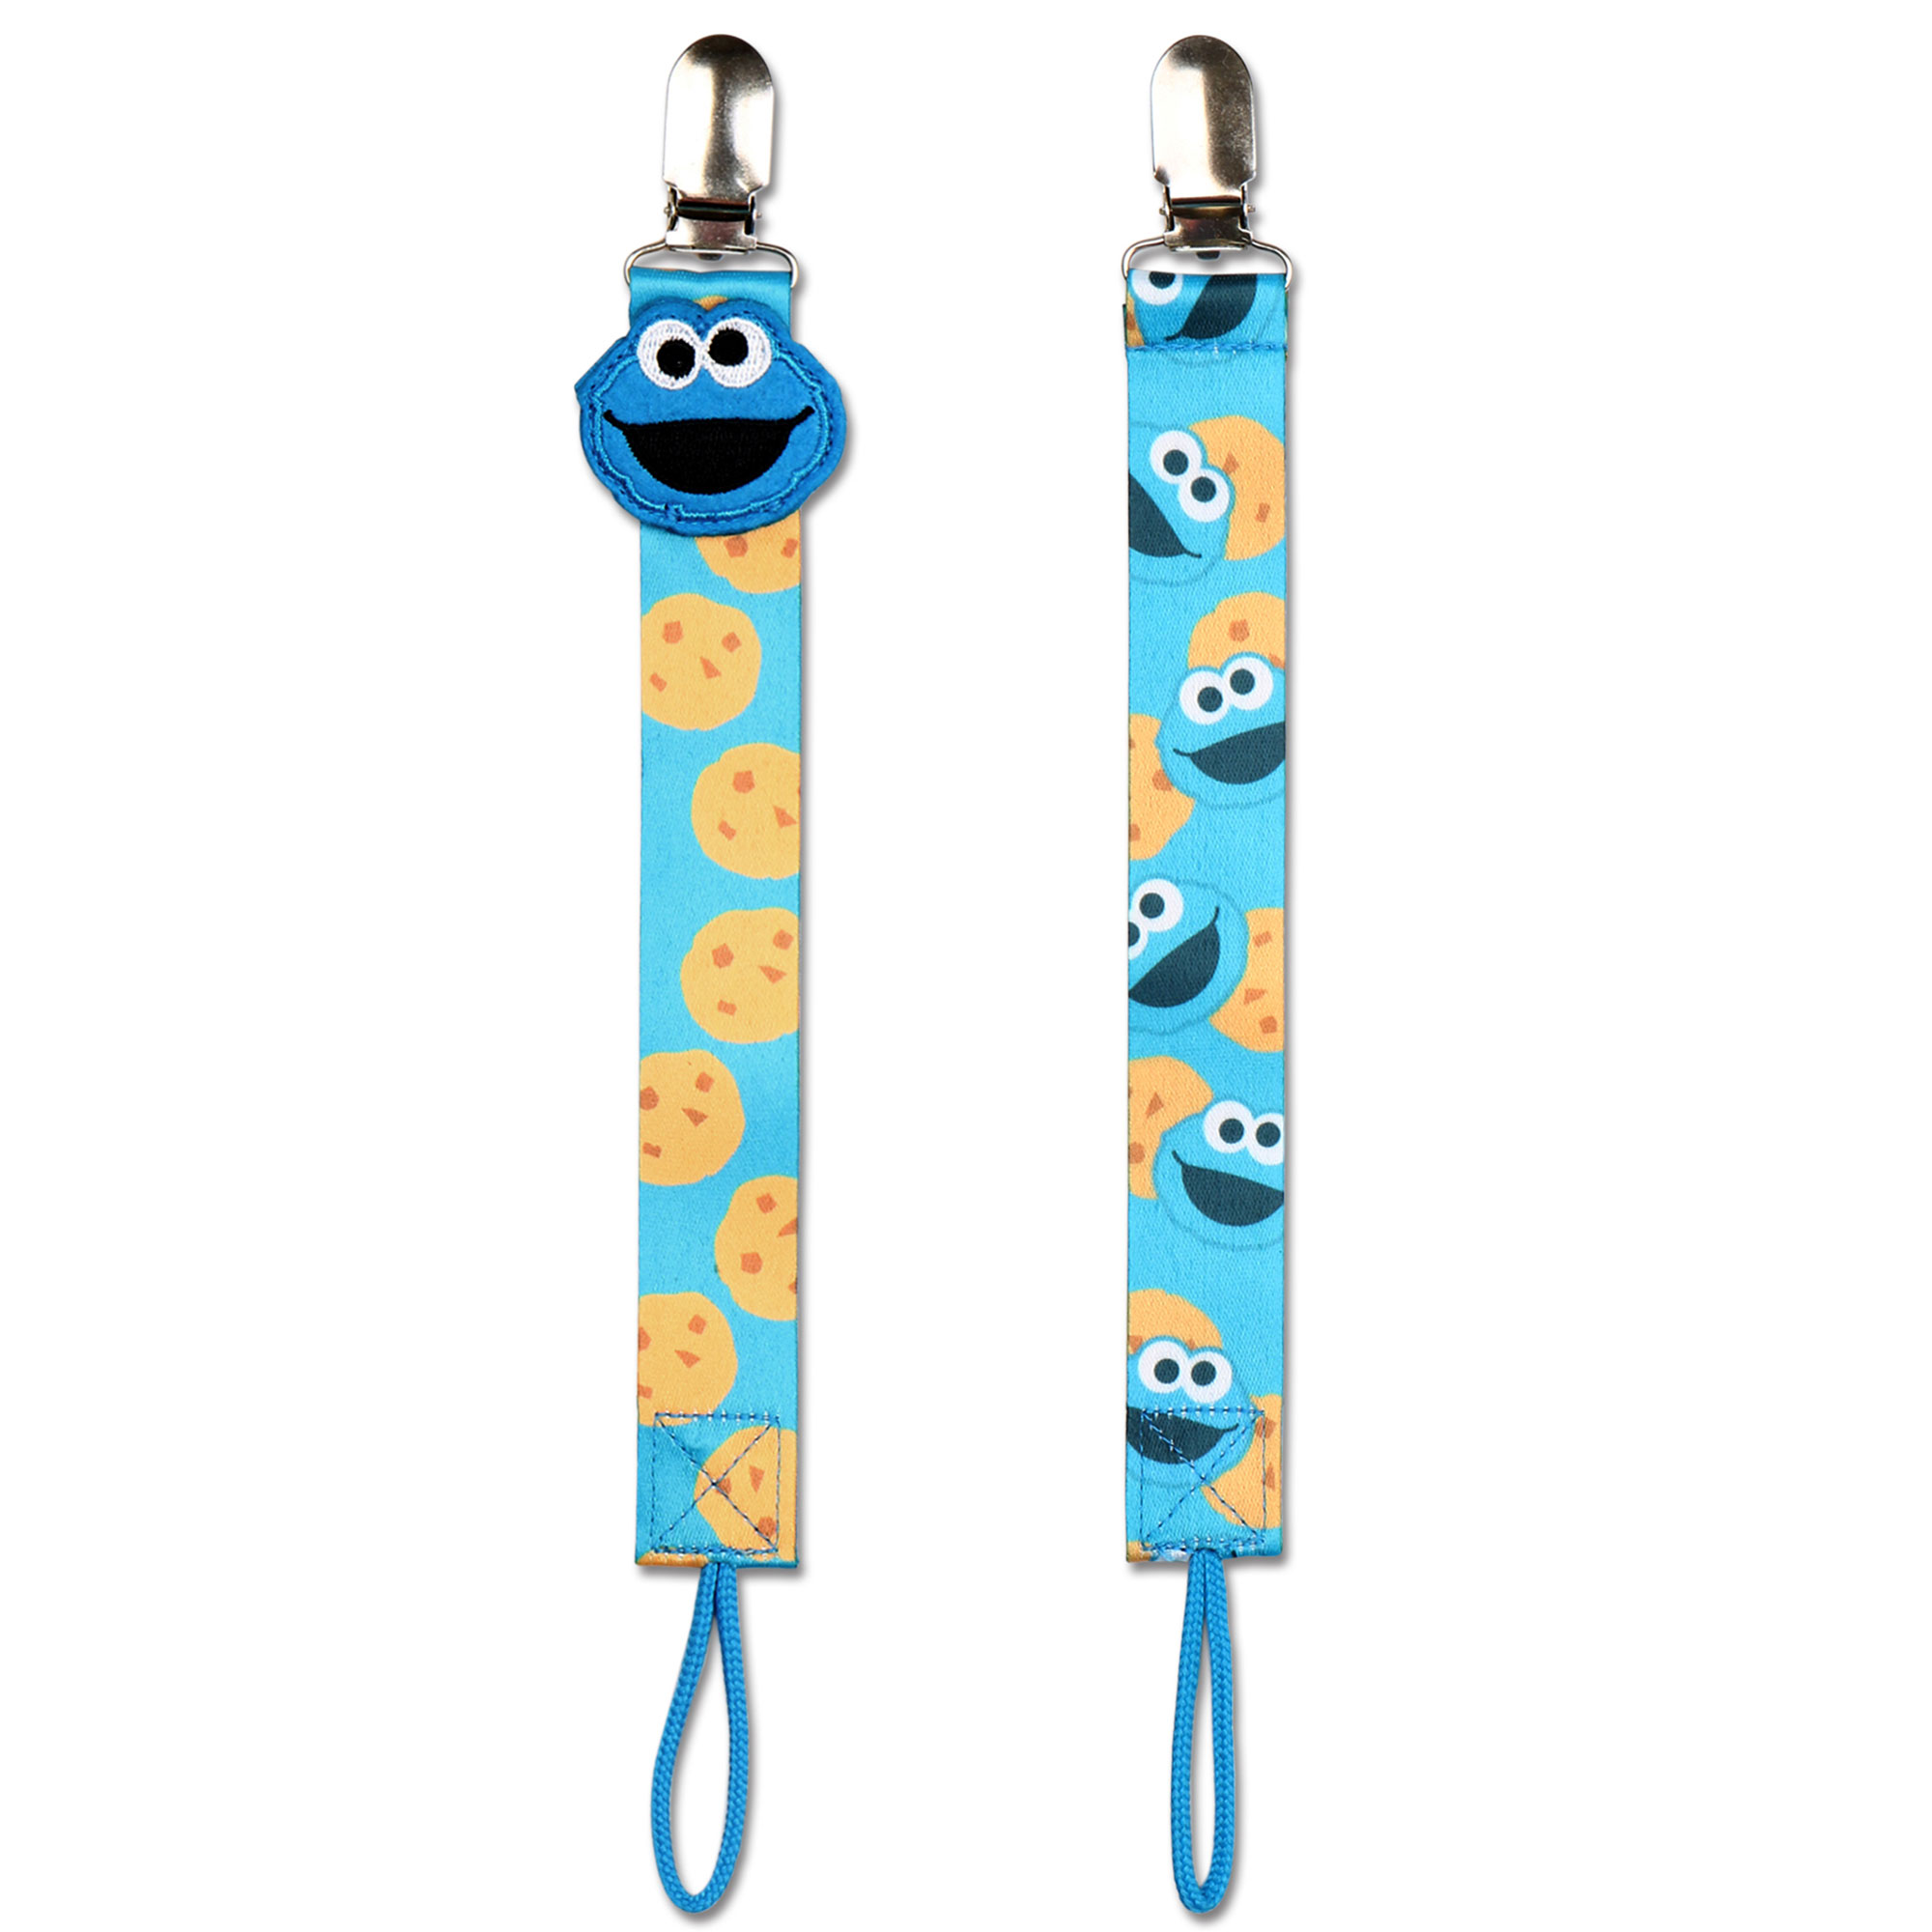 2 No Throw Pacifier Tethers Holders - Cookie Monster from Sesame Street